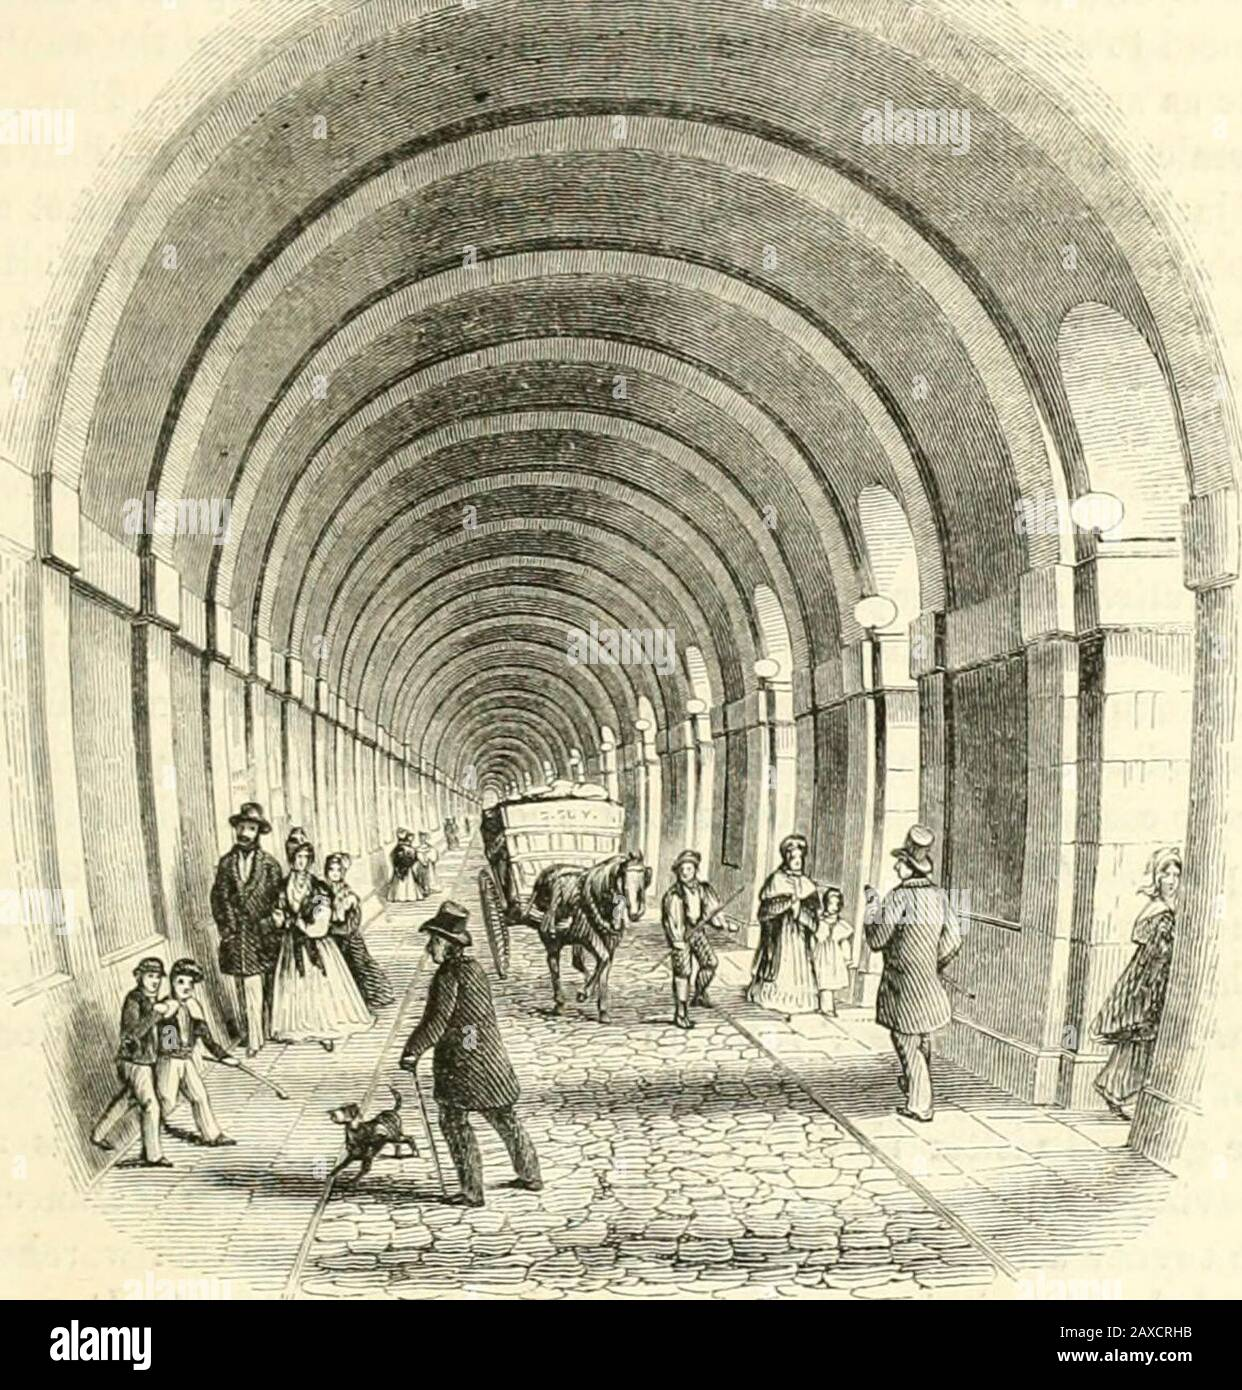 London . [Process of Coining.]. [View in iho Tunnel.] LIV.—THE THAiAlES TUNNEL Whatever Wapping may appear to the eyes of landsmen, to the British sailor itis, without douLt, a region of romance ; a place to think about when—having beenlong tossed on some still vexed sea, or, more intolerable annoyance, becalmedon some far-stretching dead waste of waters—his heart yearns towards home ; andthe spot, made so familiar to him by the songs and stories he most delights in,—the spot where he has so often first touched English ground after many monthsabsence,—rises to his imagination decked in fairer Stock Photo